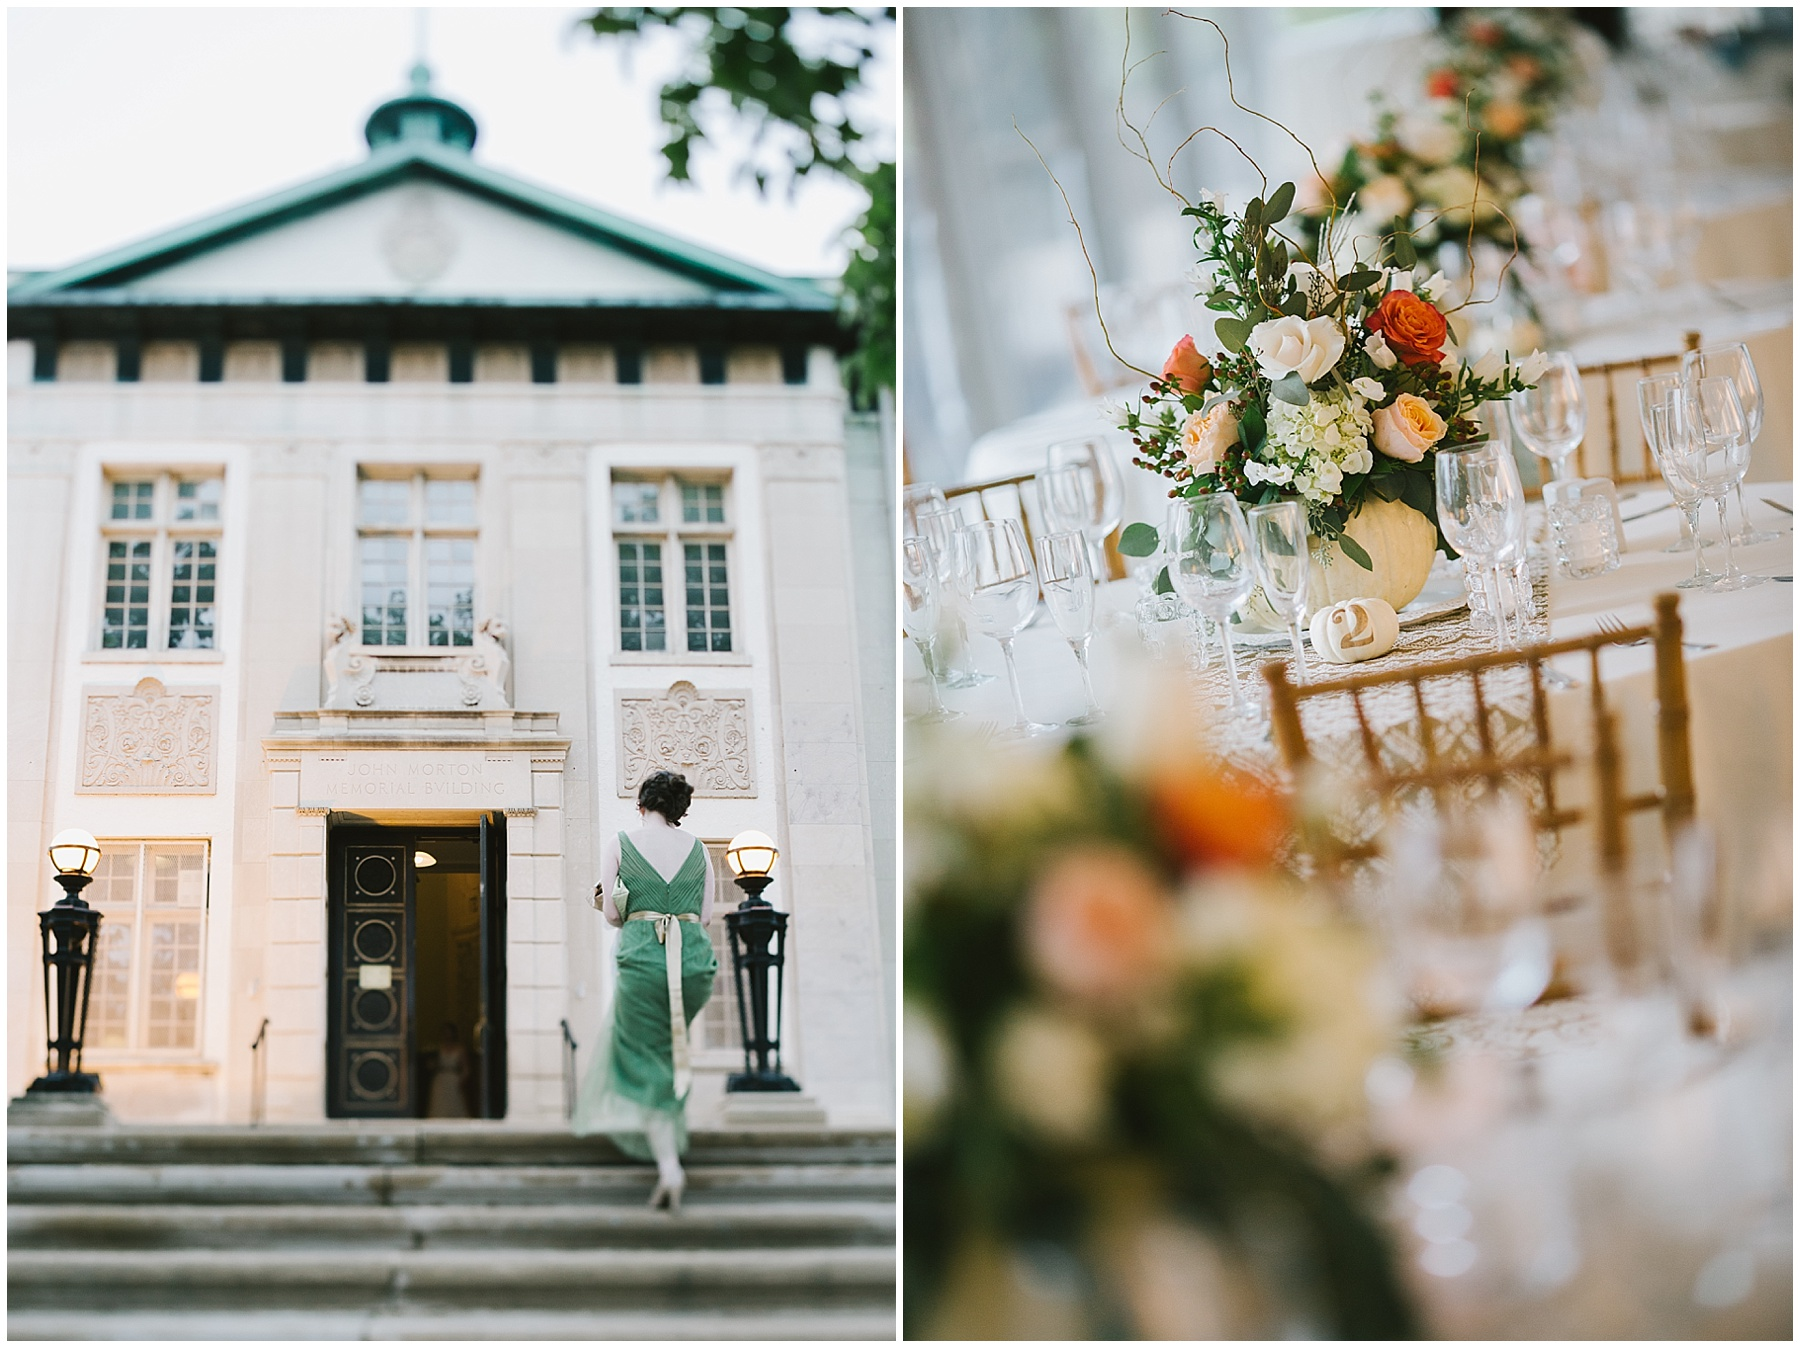 Linda+Eric, Wedding at American Swedish Museum Philadelphia | GEORGI ...